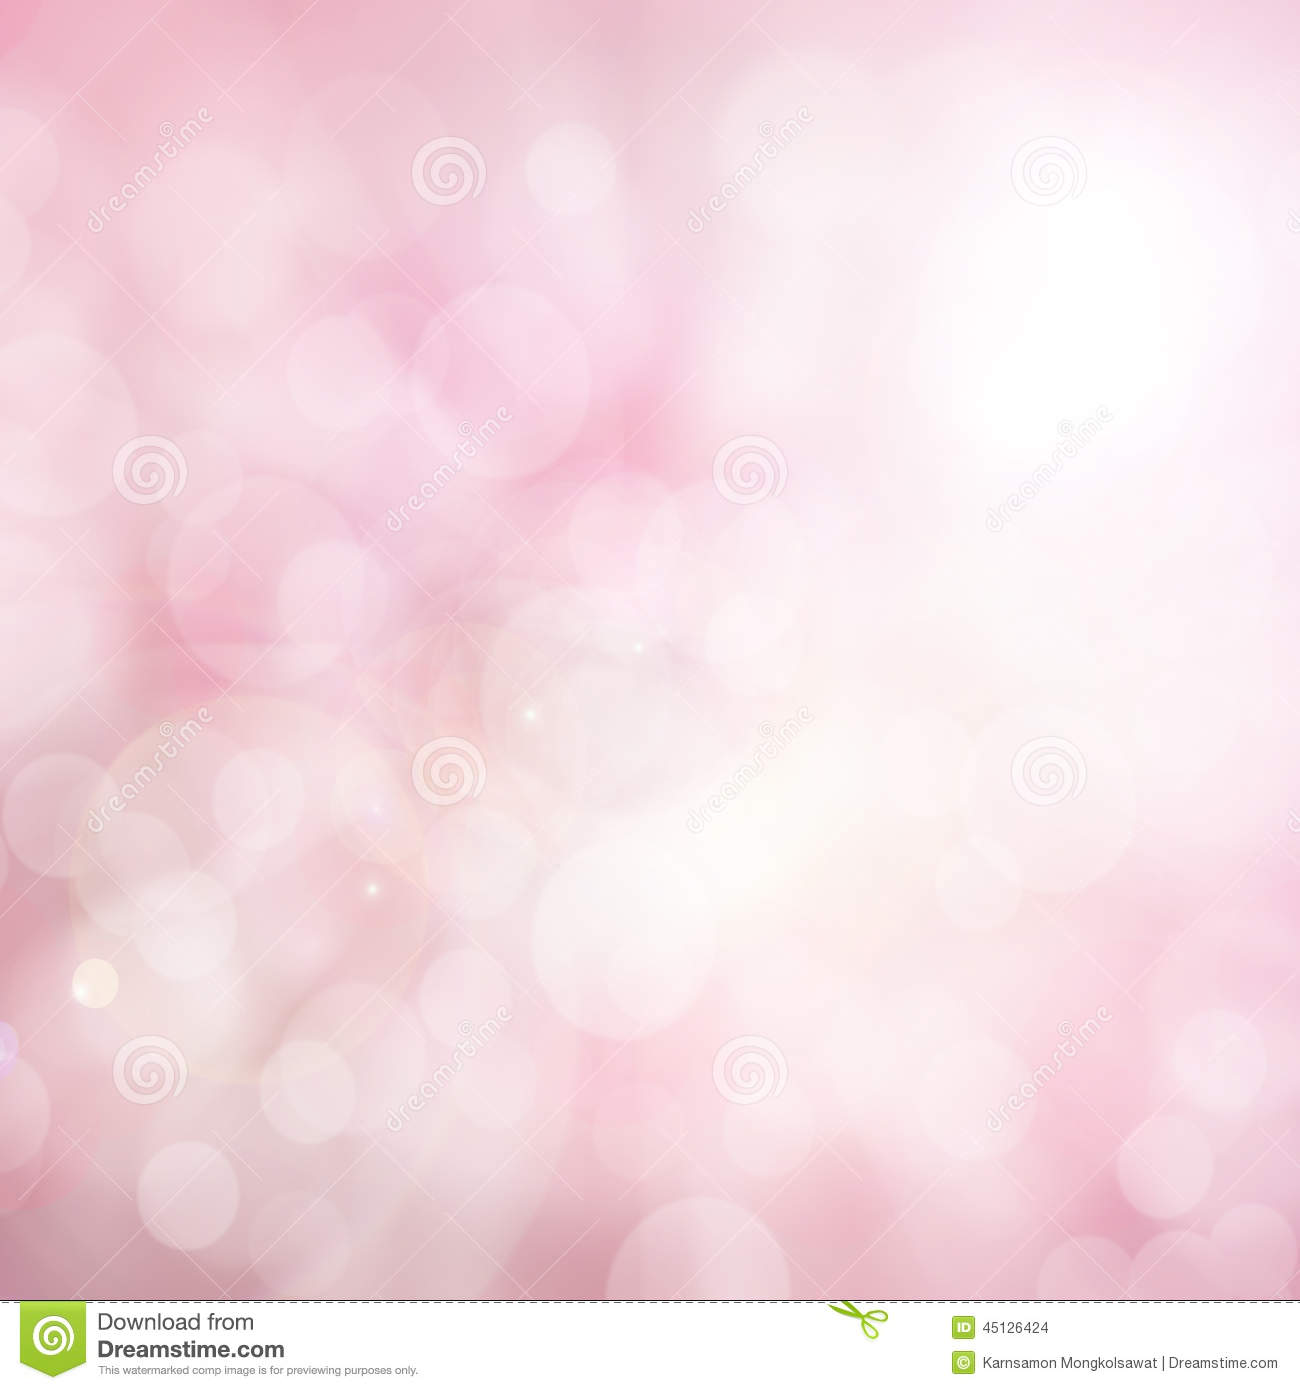 Abstract blurred color and bokeh background, pink and white.